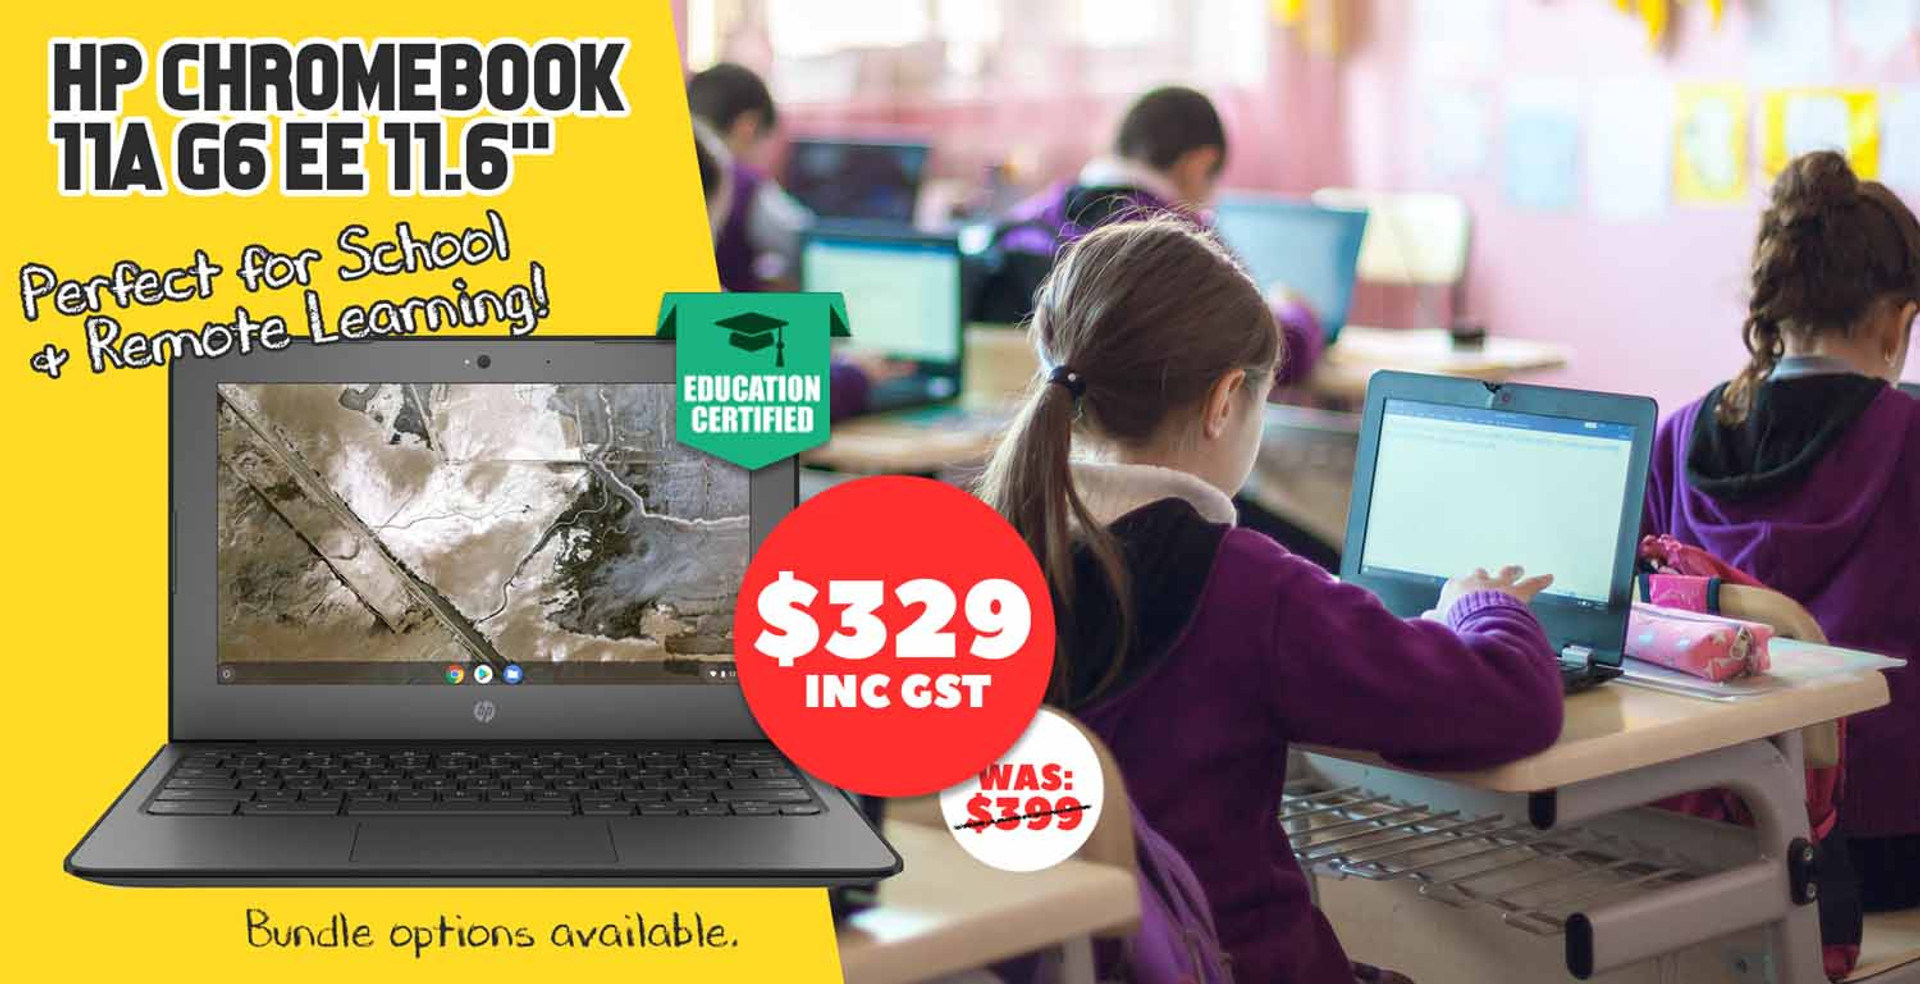 Get the HP Chromebook 11A: Perfect for School & Remote Learning!